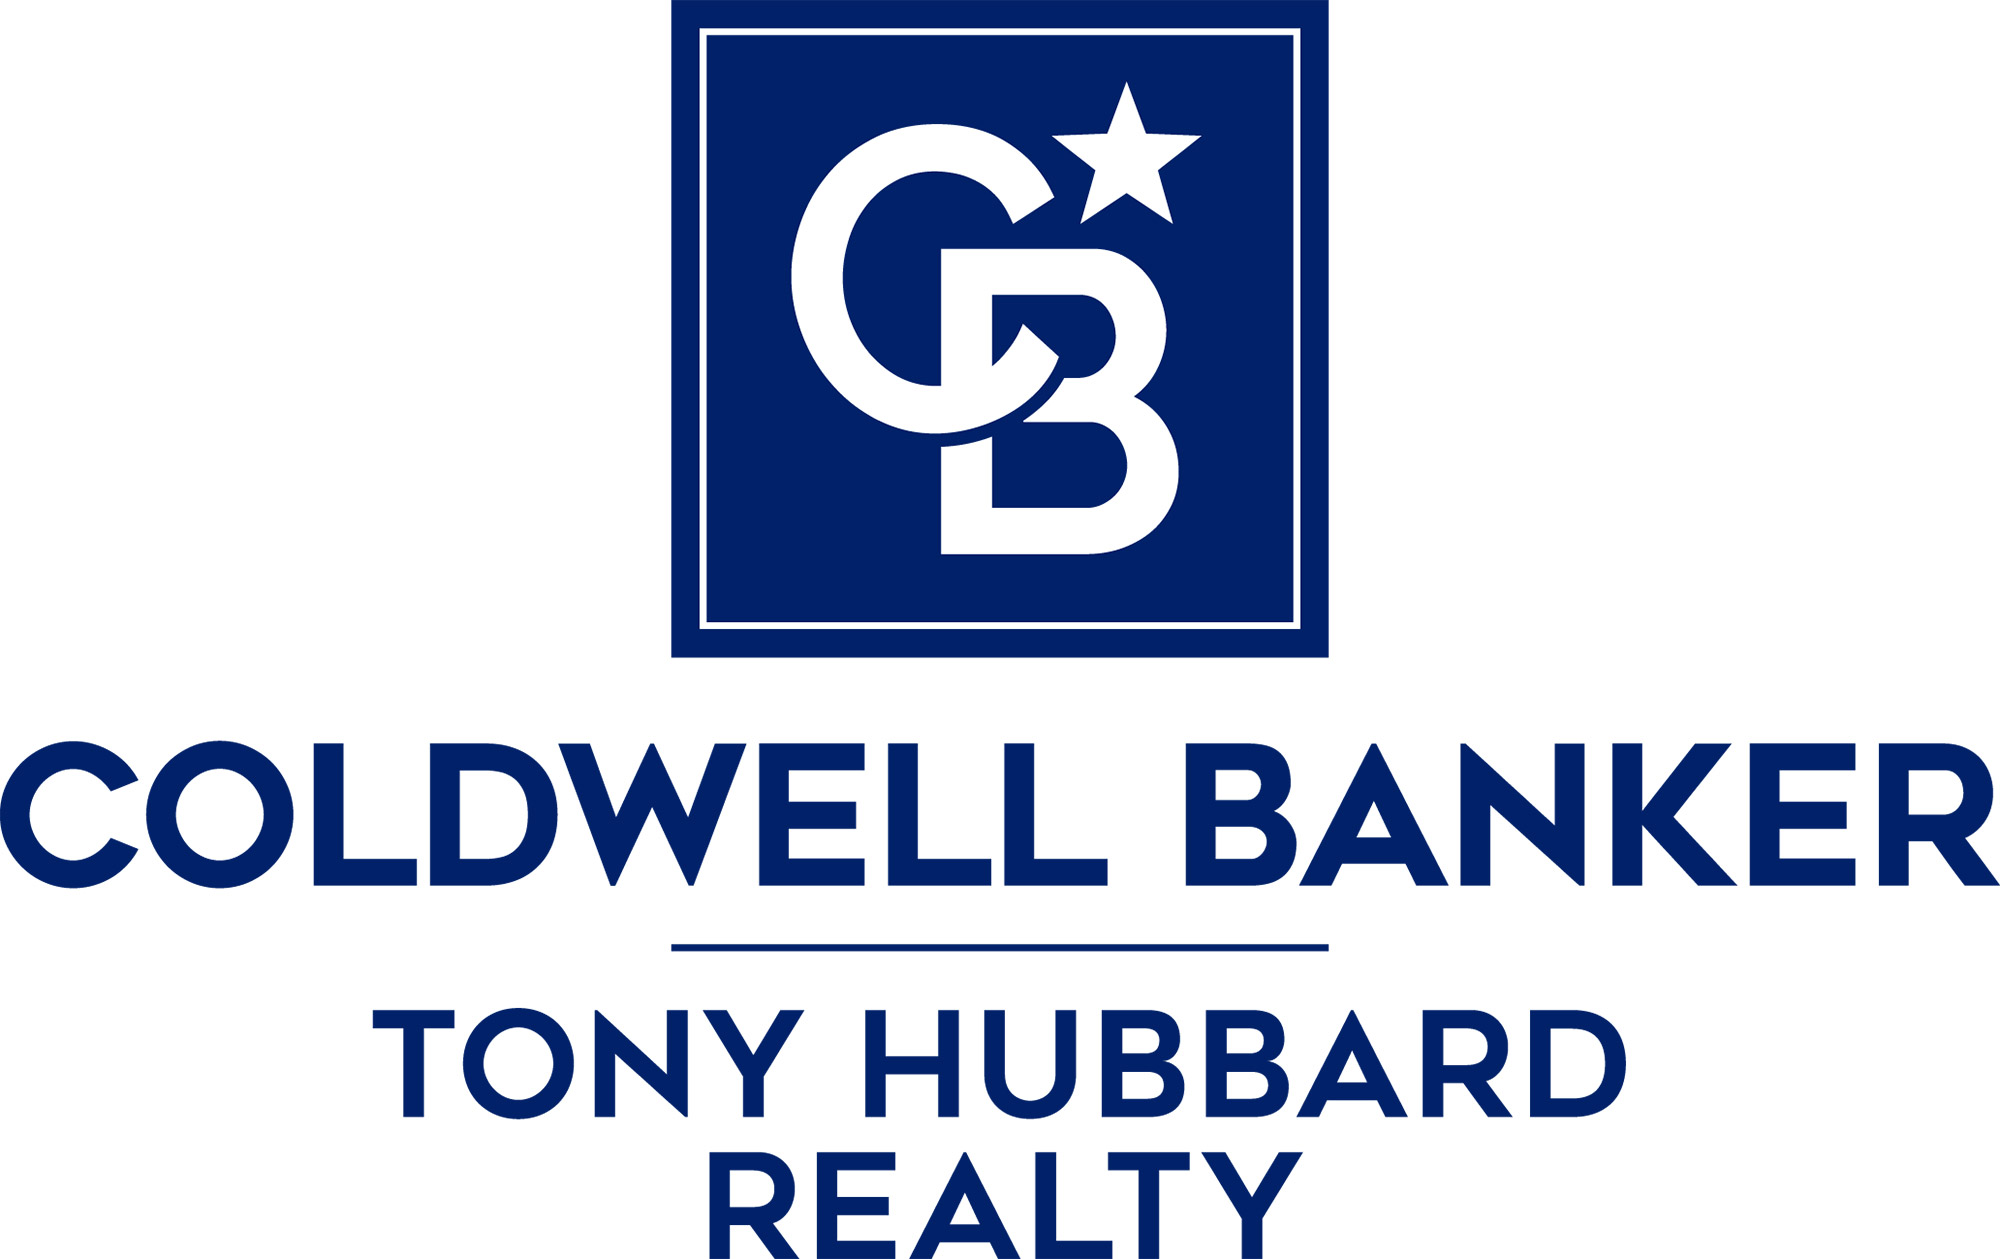 Julie Nay Gordon - Coldwell Banker Tony Hubbard